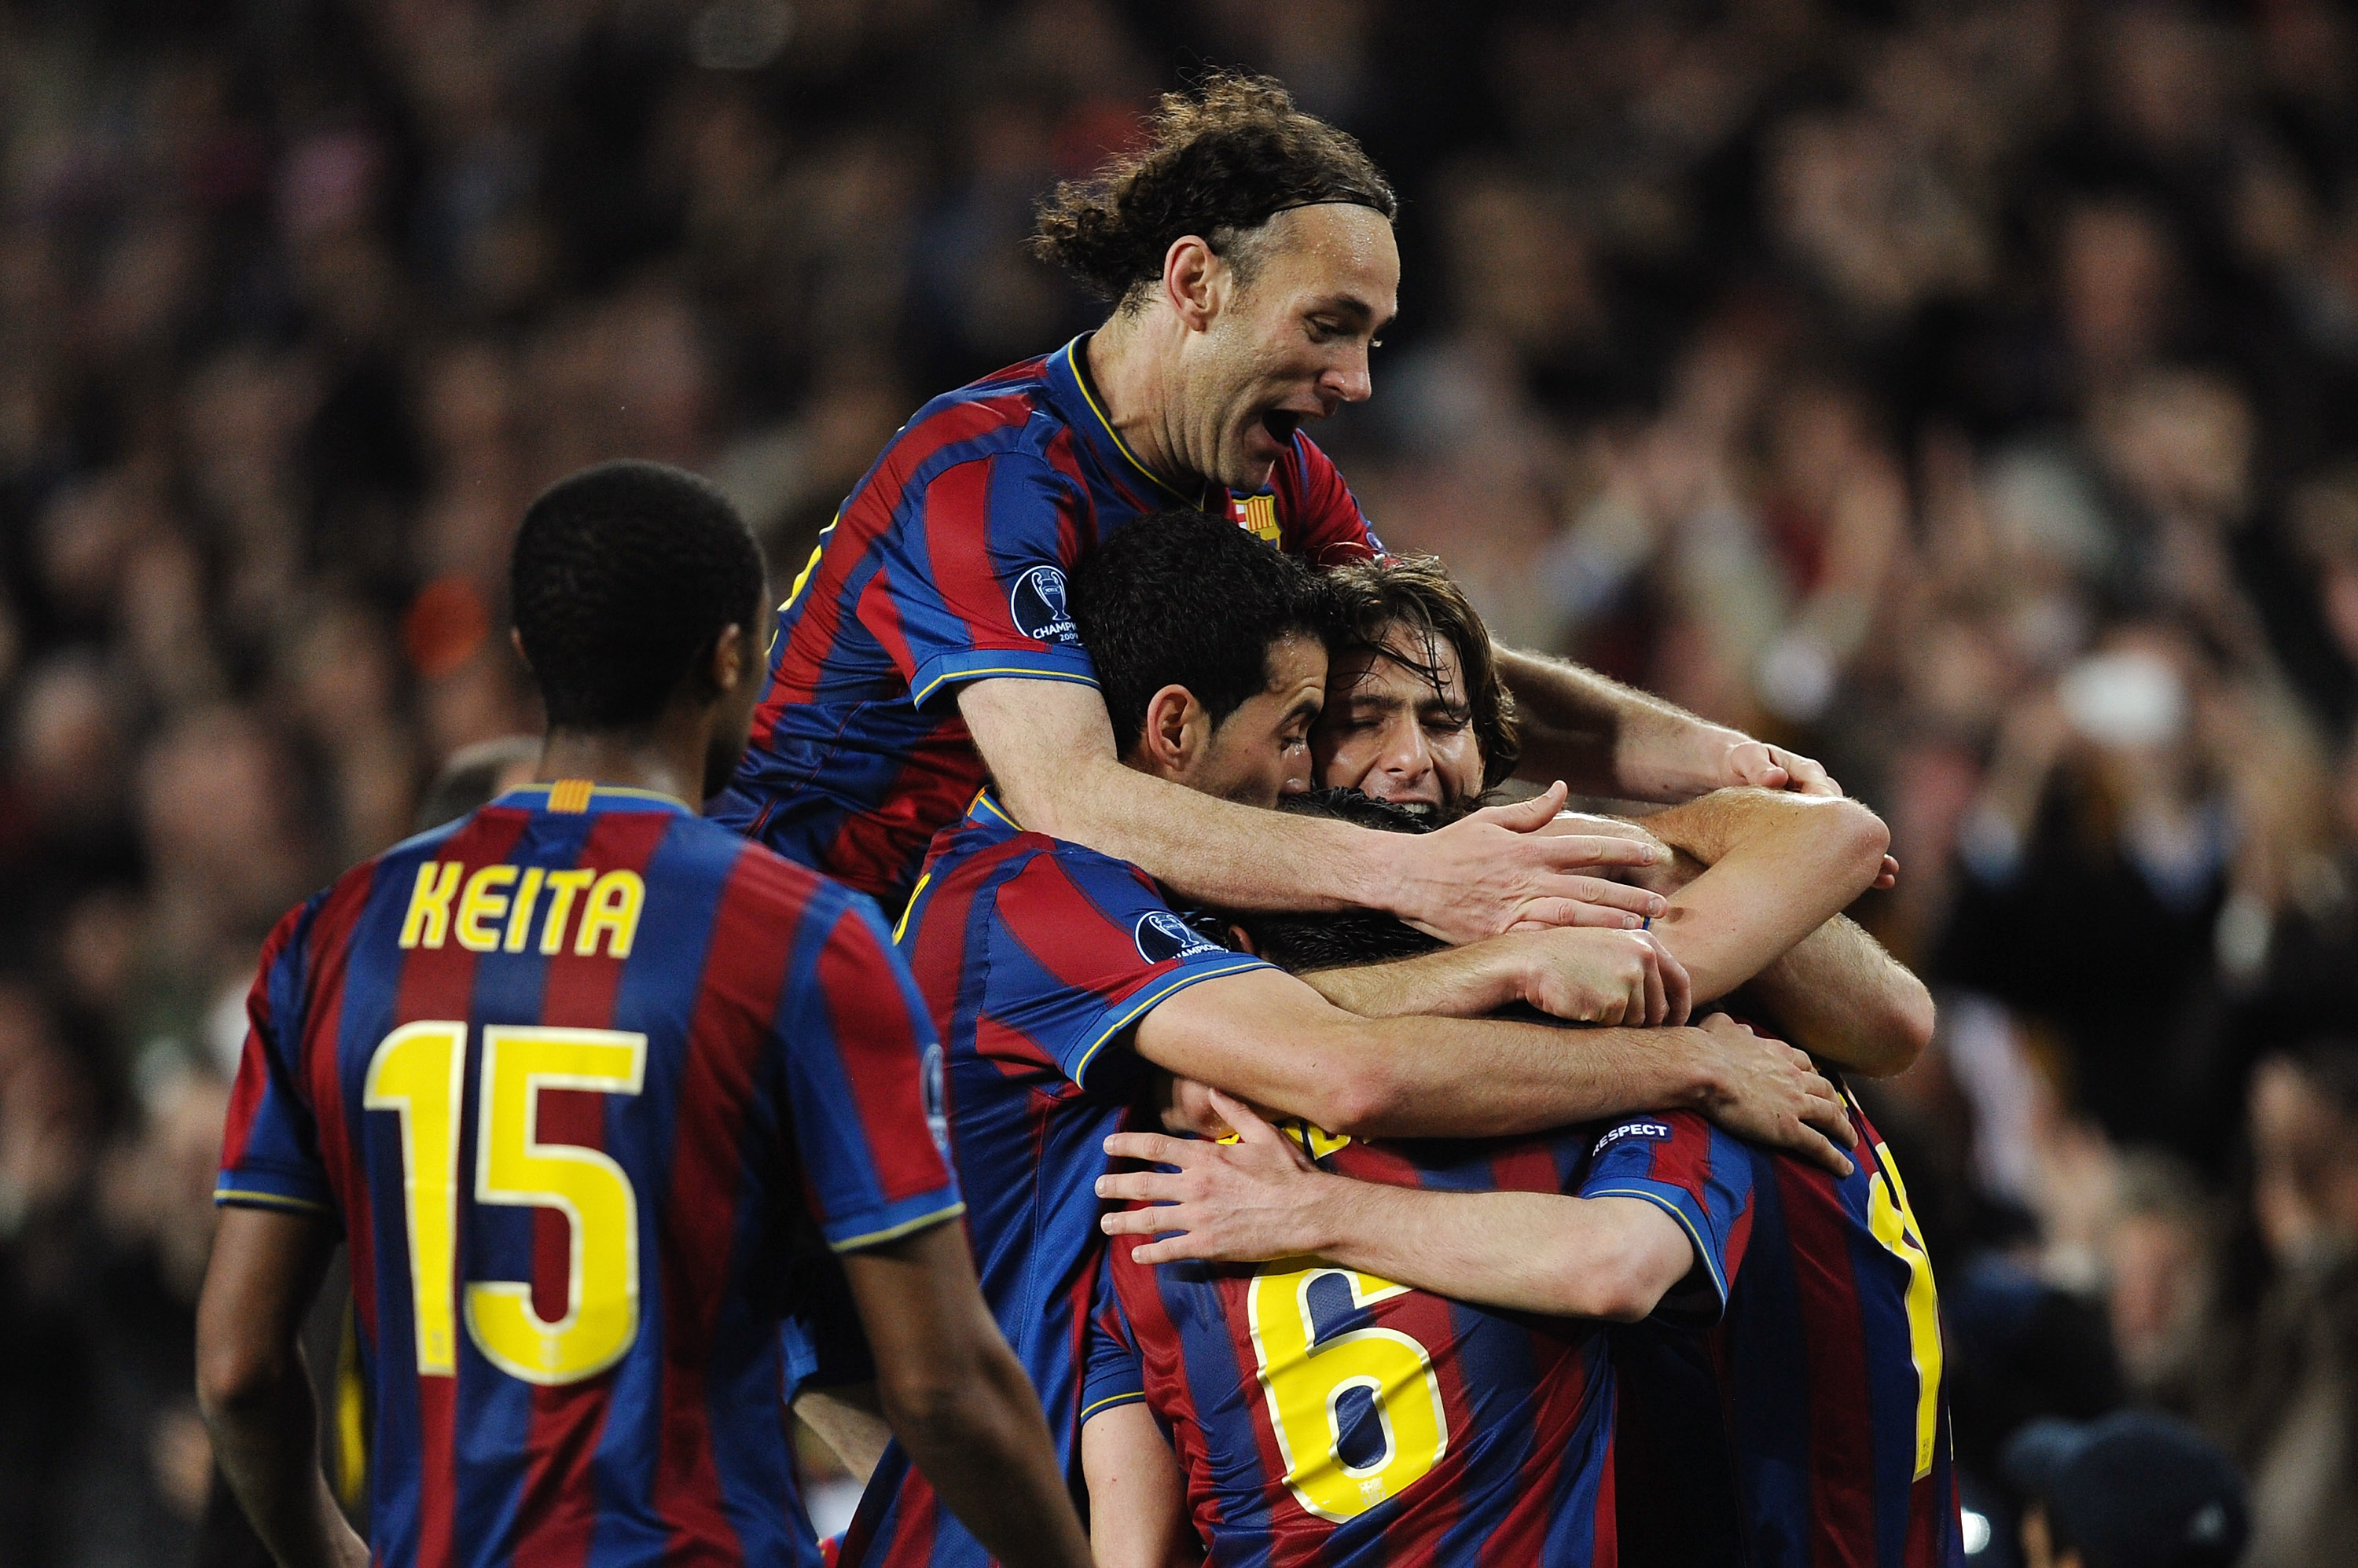 BARCELONA, SPAIN - APRIL 06:  Players of Barcelona celebrate their fourth goal scored by Lionel Messi during the UEFA Champions League quarter final second leg match between Barcelona and Arsenal at Camp Nou on April 6, 2010 in Barcelona, Spain.  (Photo b